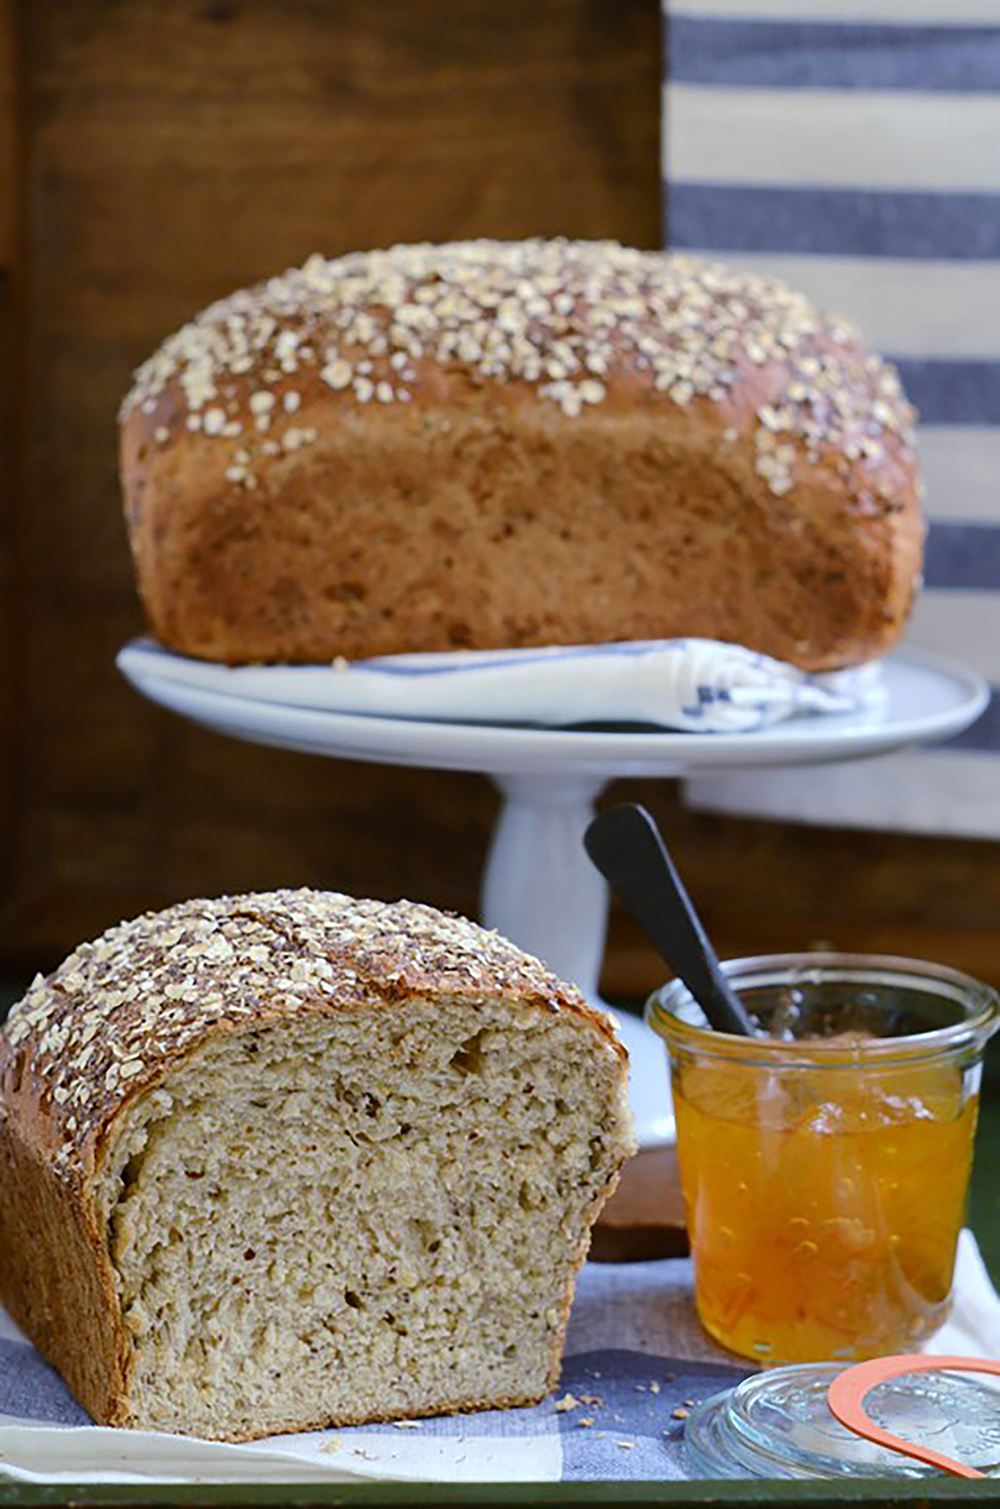 Multigrain Oatmeal Bread | Nuts, seeds and cracked wheat give this wholesome bread a wonderfully crunchy texture. Find recipe at redstaryeast.com.